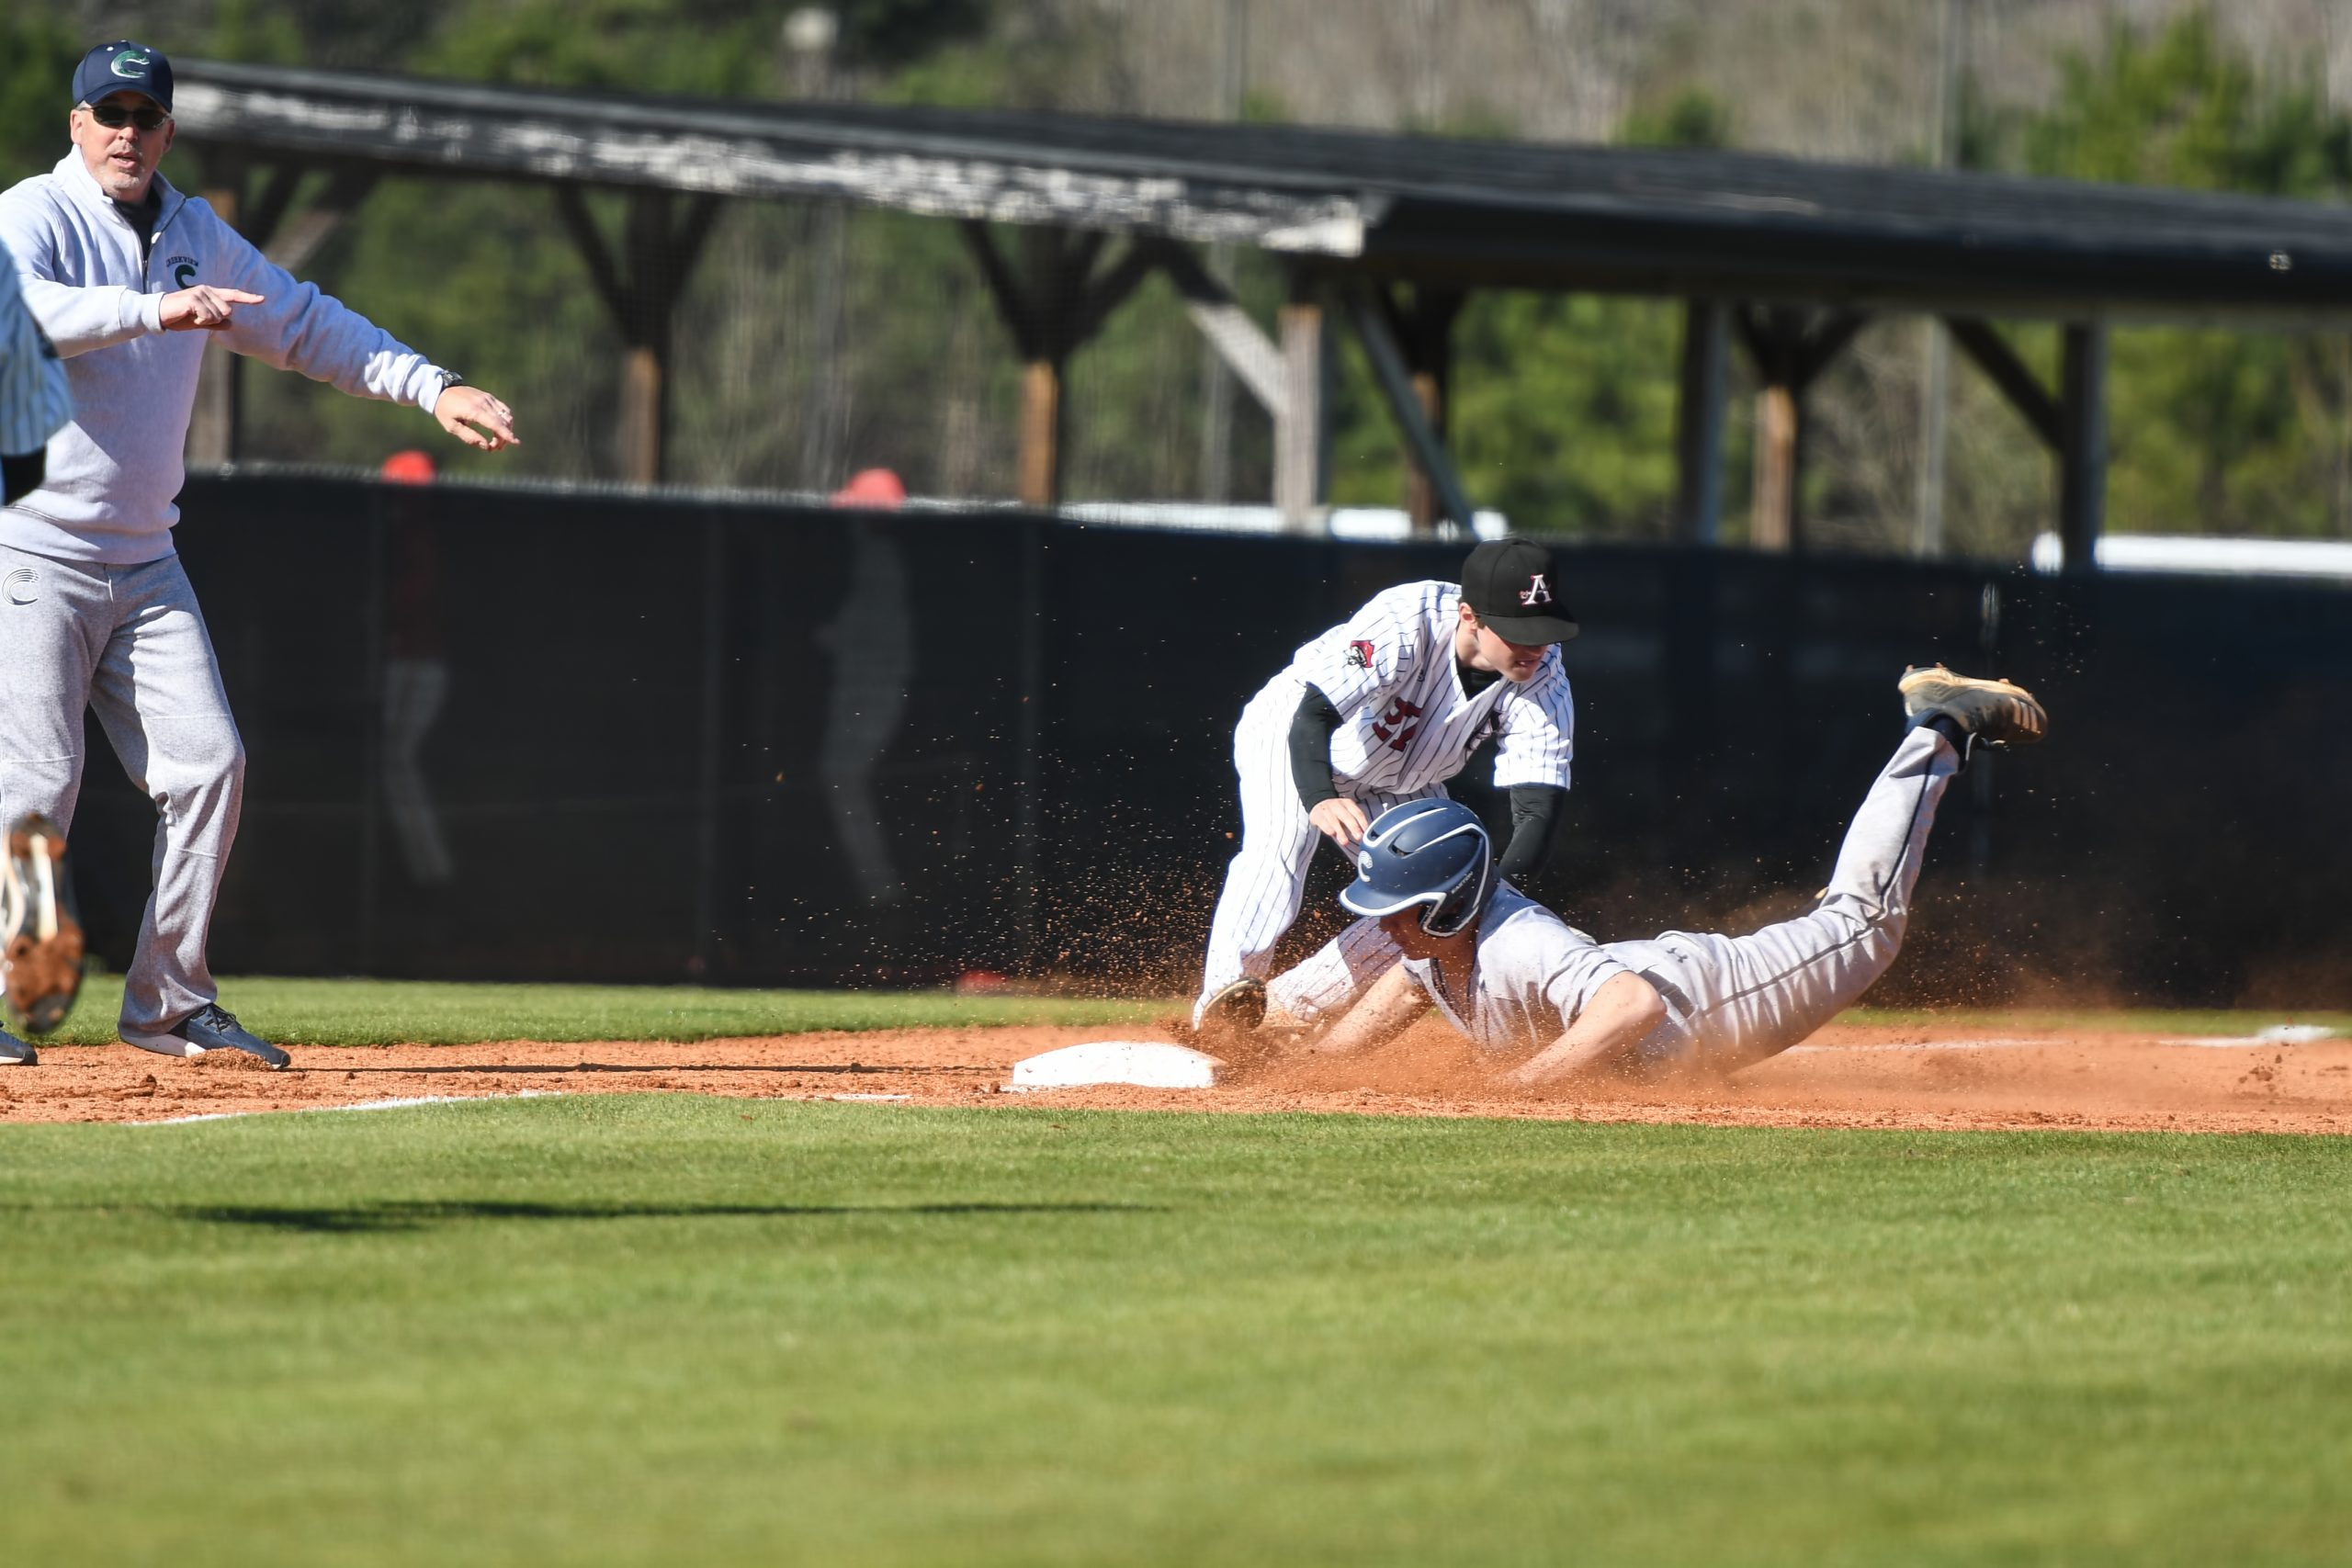 Allatoona Varsity Baseball vs Creekview on March 7, 2020 - Acworth, GA. Credit - Chrystal Moore